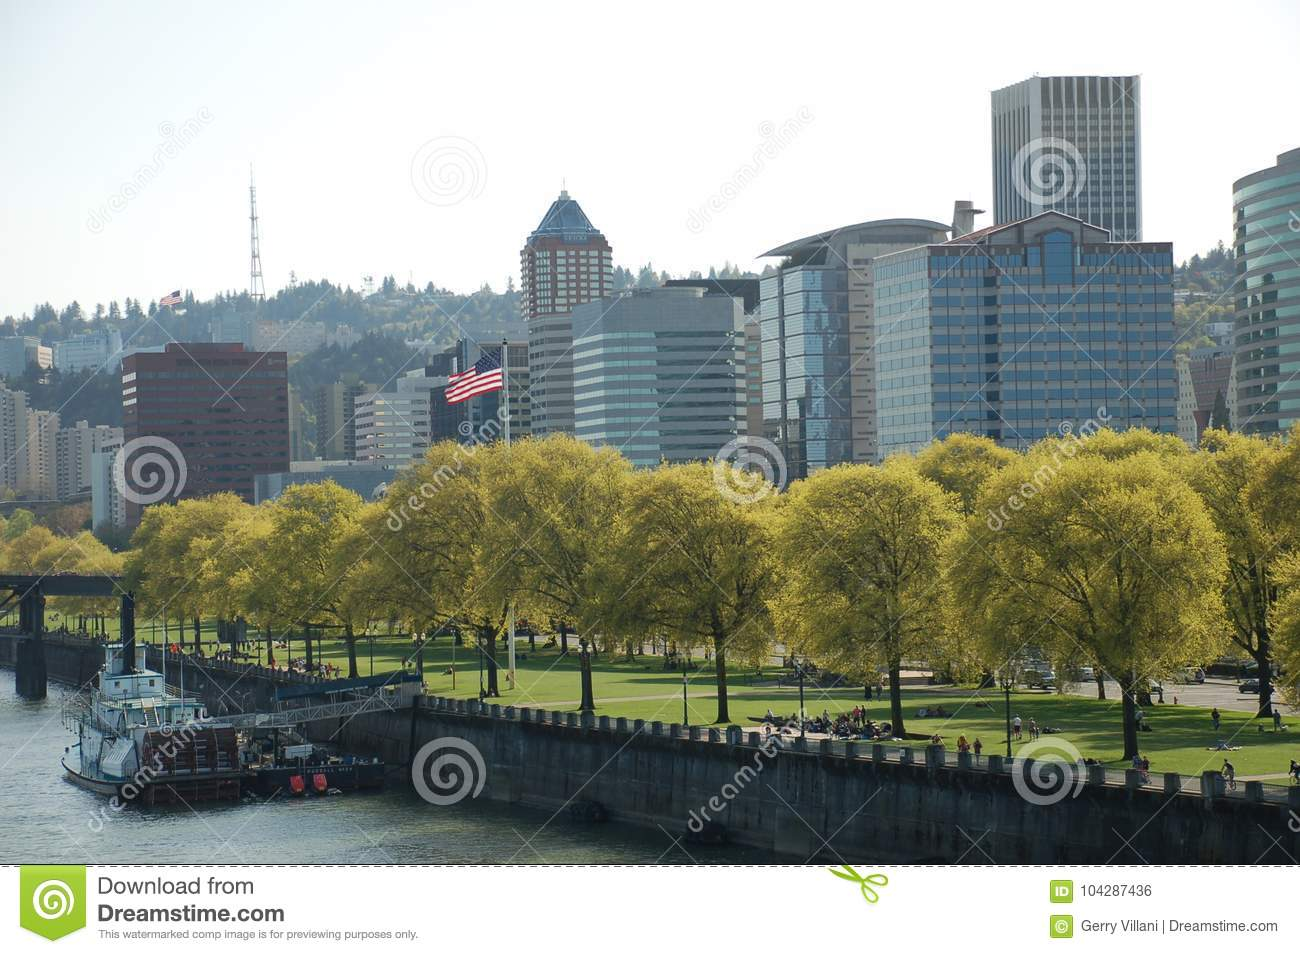 Tom McCall Waterfront Park in Portland, Oregon